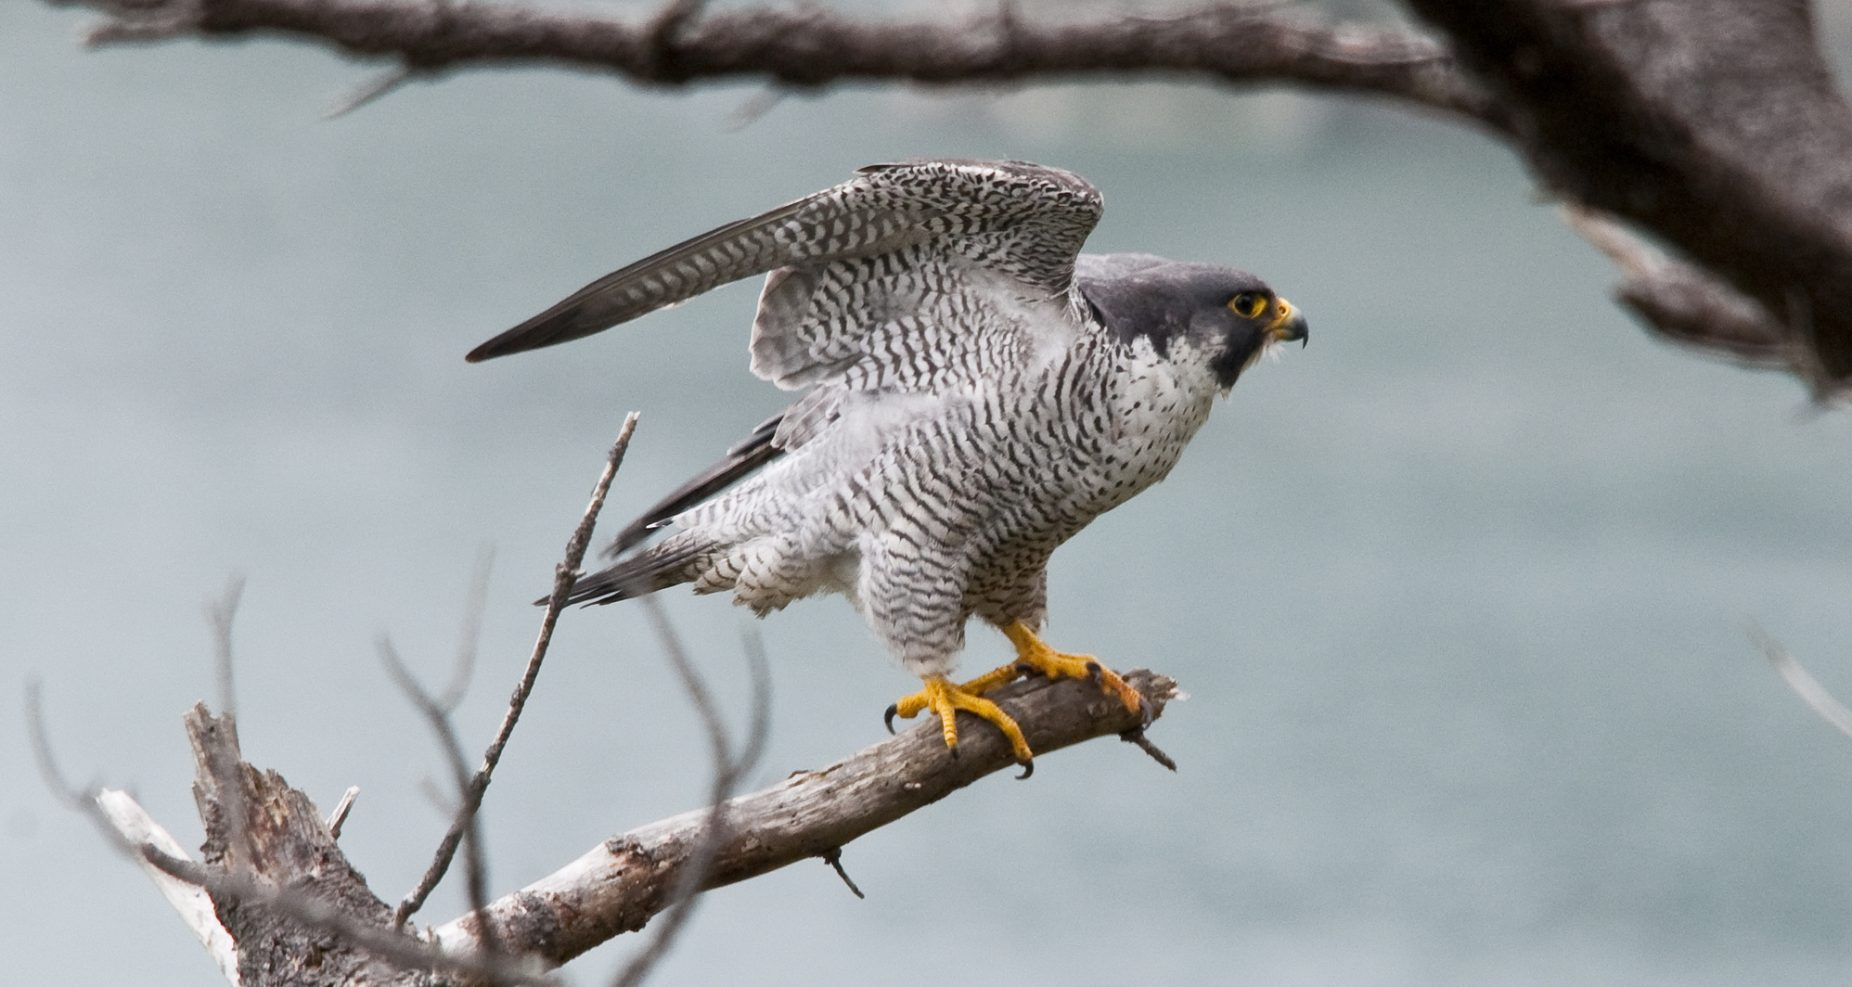 Image: Peregrine Falcon on a branch with wings stretched upwards